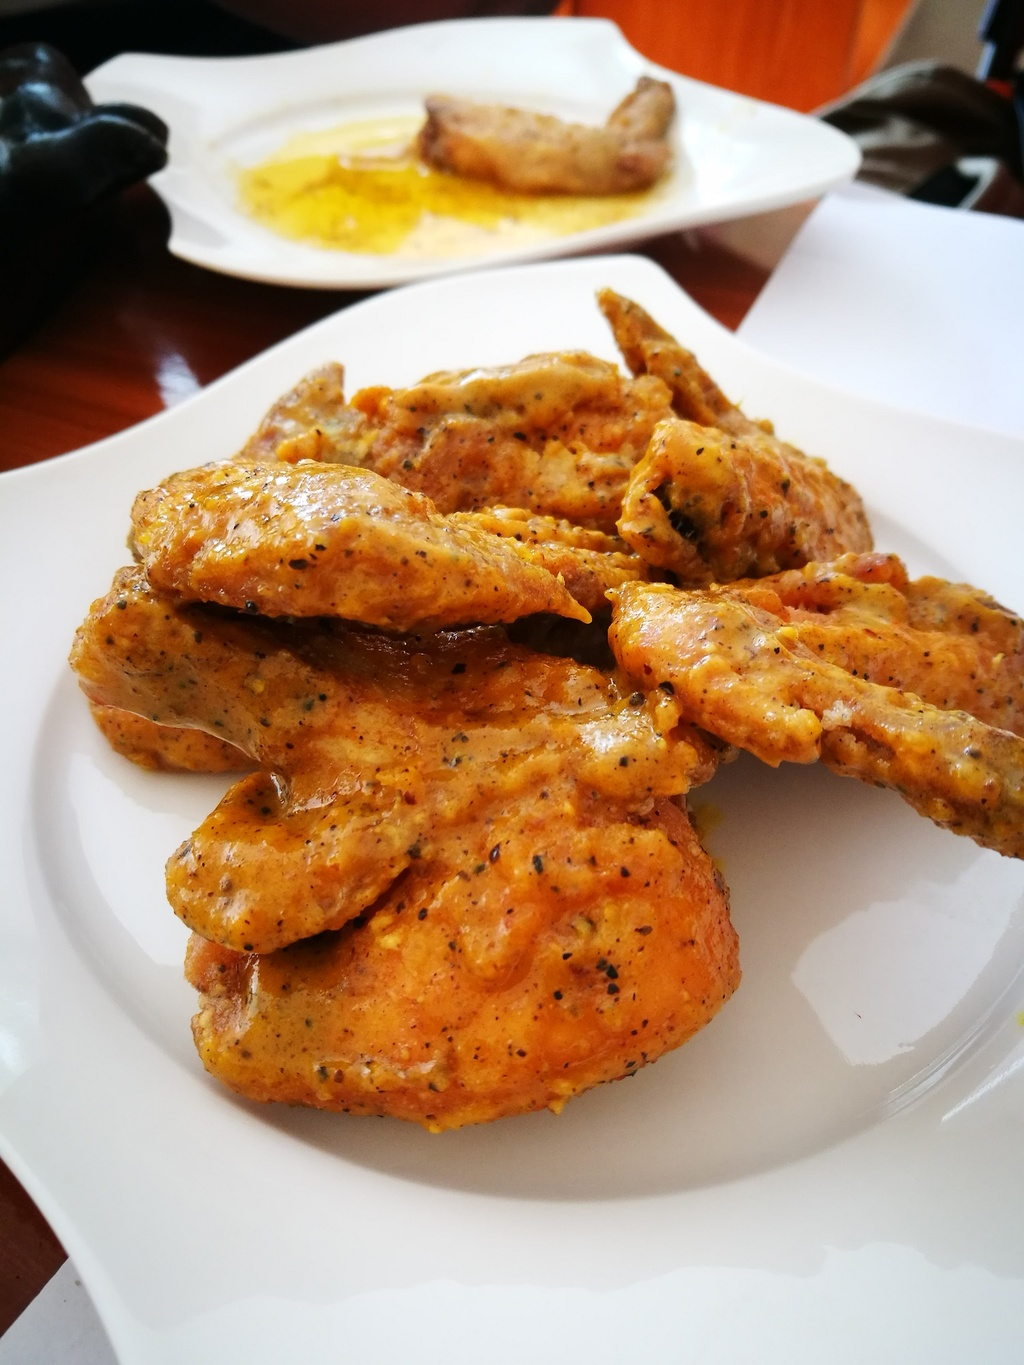 Unlimited Chicken and Shrimps at Papart's Diner and Cafe | Hey, Miss Adventures!